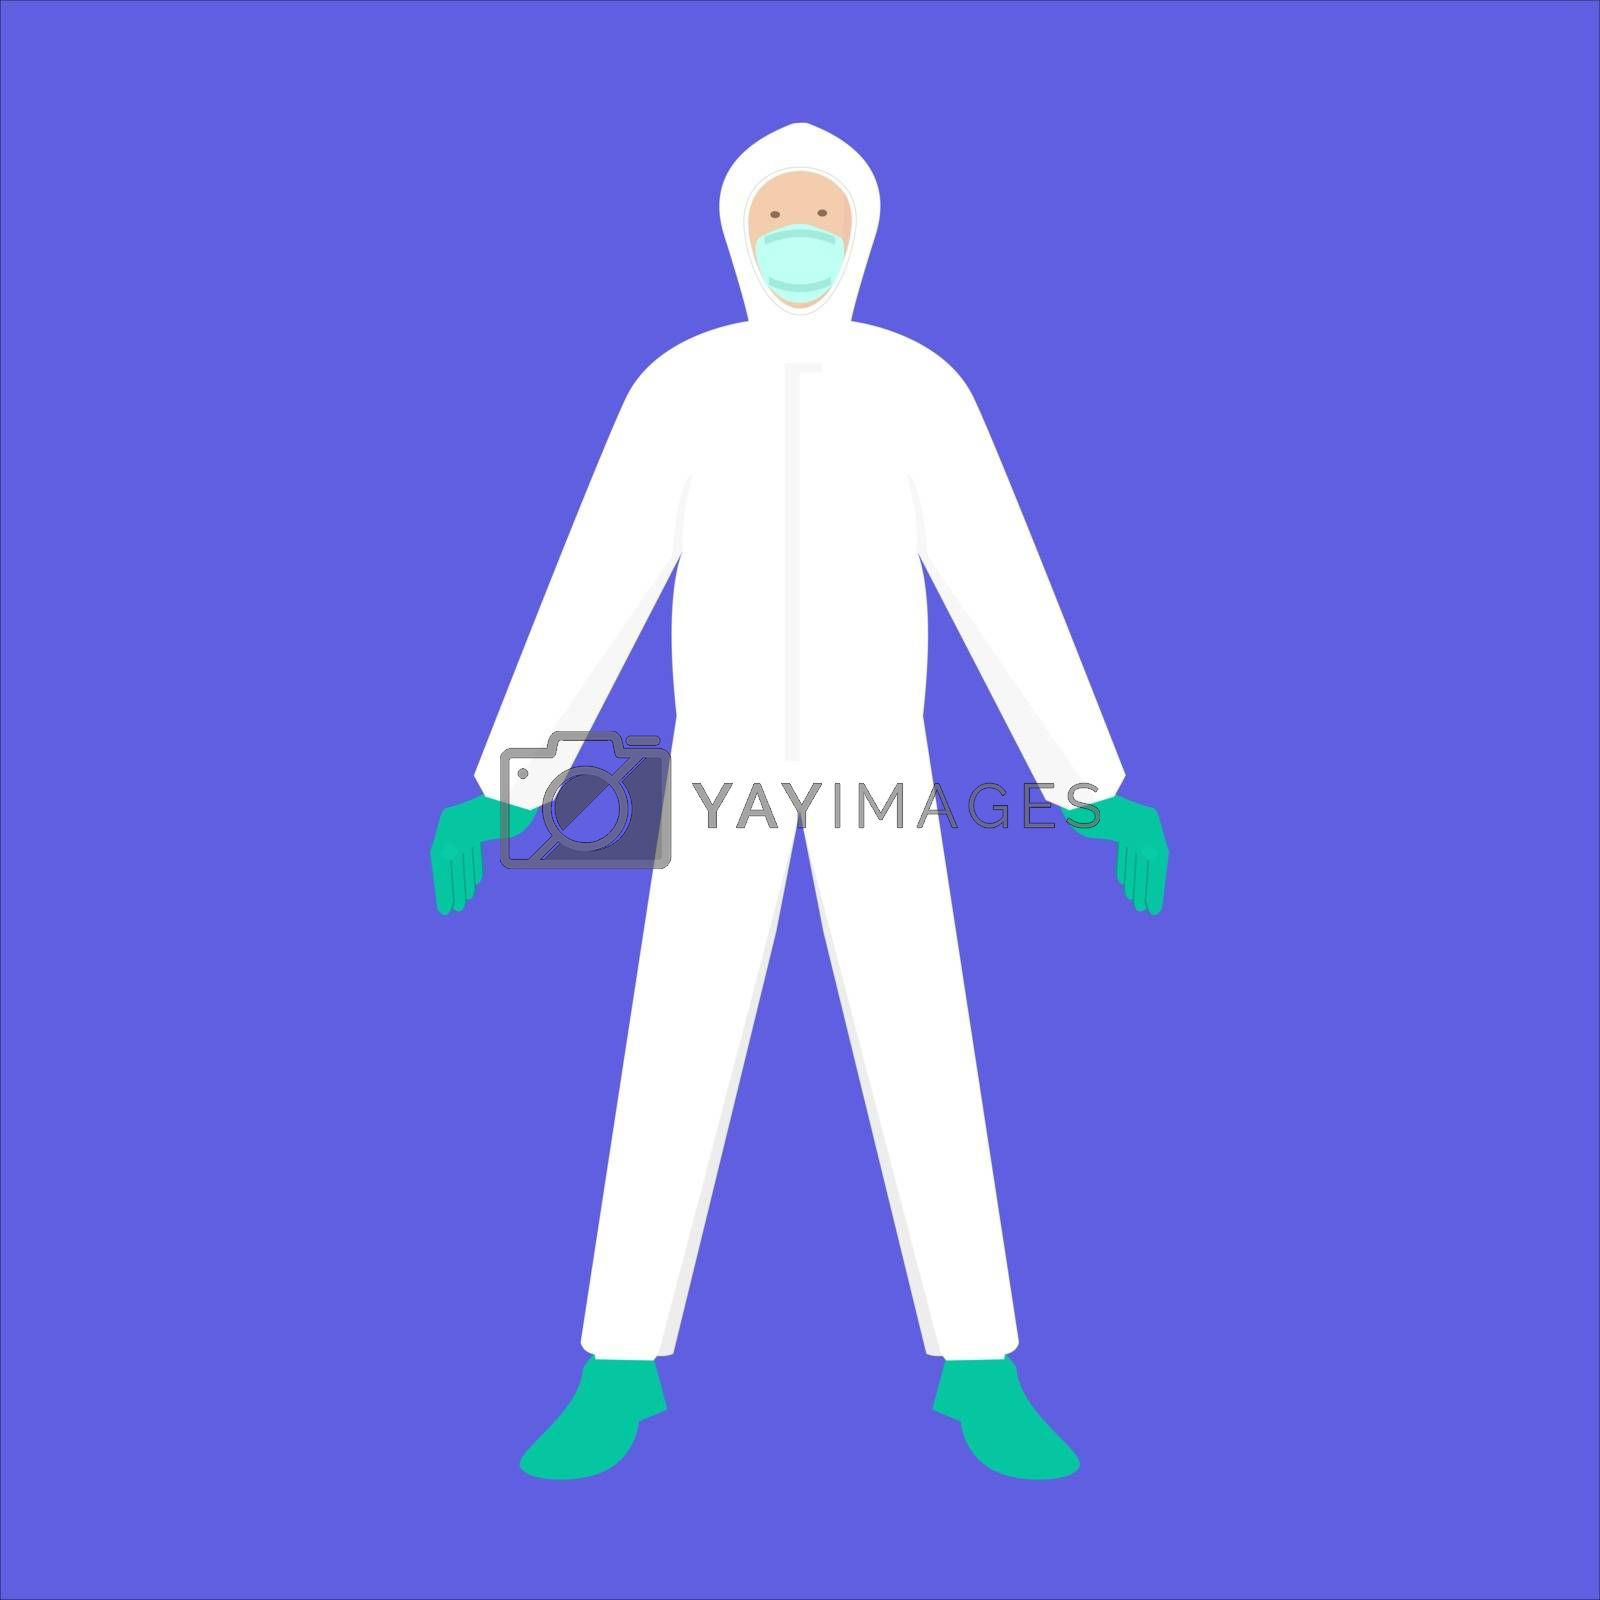 PPE or hazmat suits and protection masks to prevent epidemic MERS-CoV wuhan coronavirus 2019-nCoV pandemic medical health risk ,vector illustration